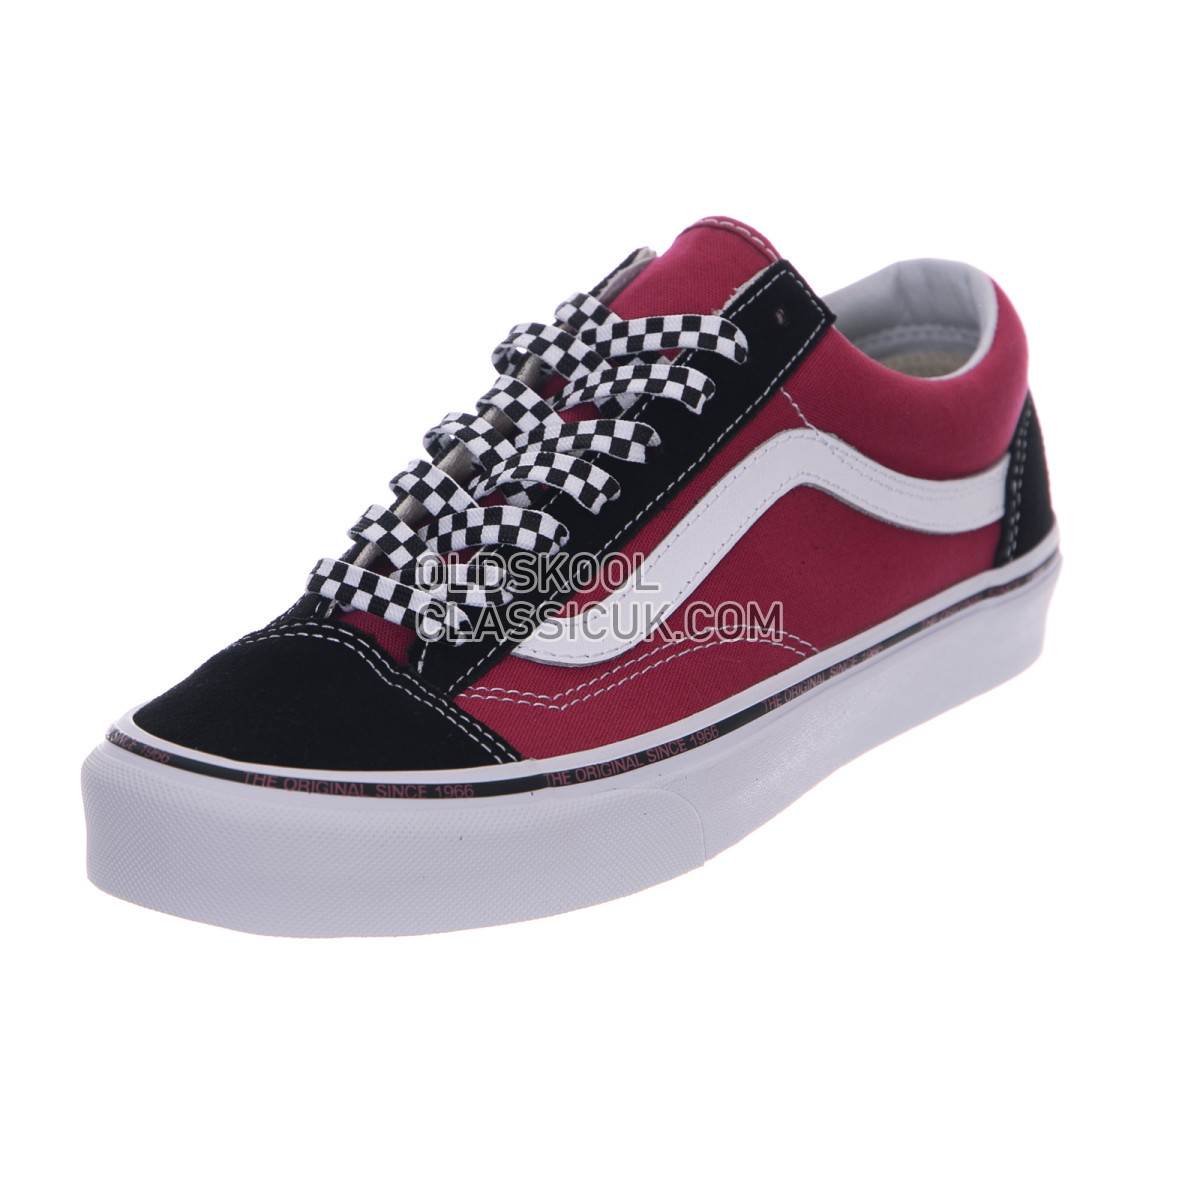 Vans Style 36 Sneakers Mens JazzyBlackTrue White VN0A3DZ3S1S Shoes £60